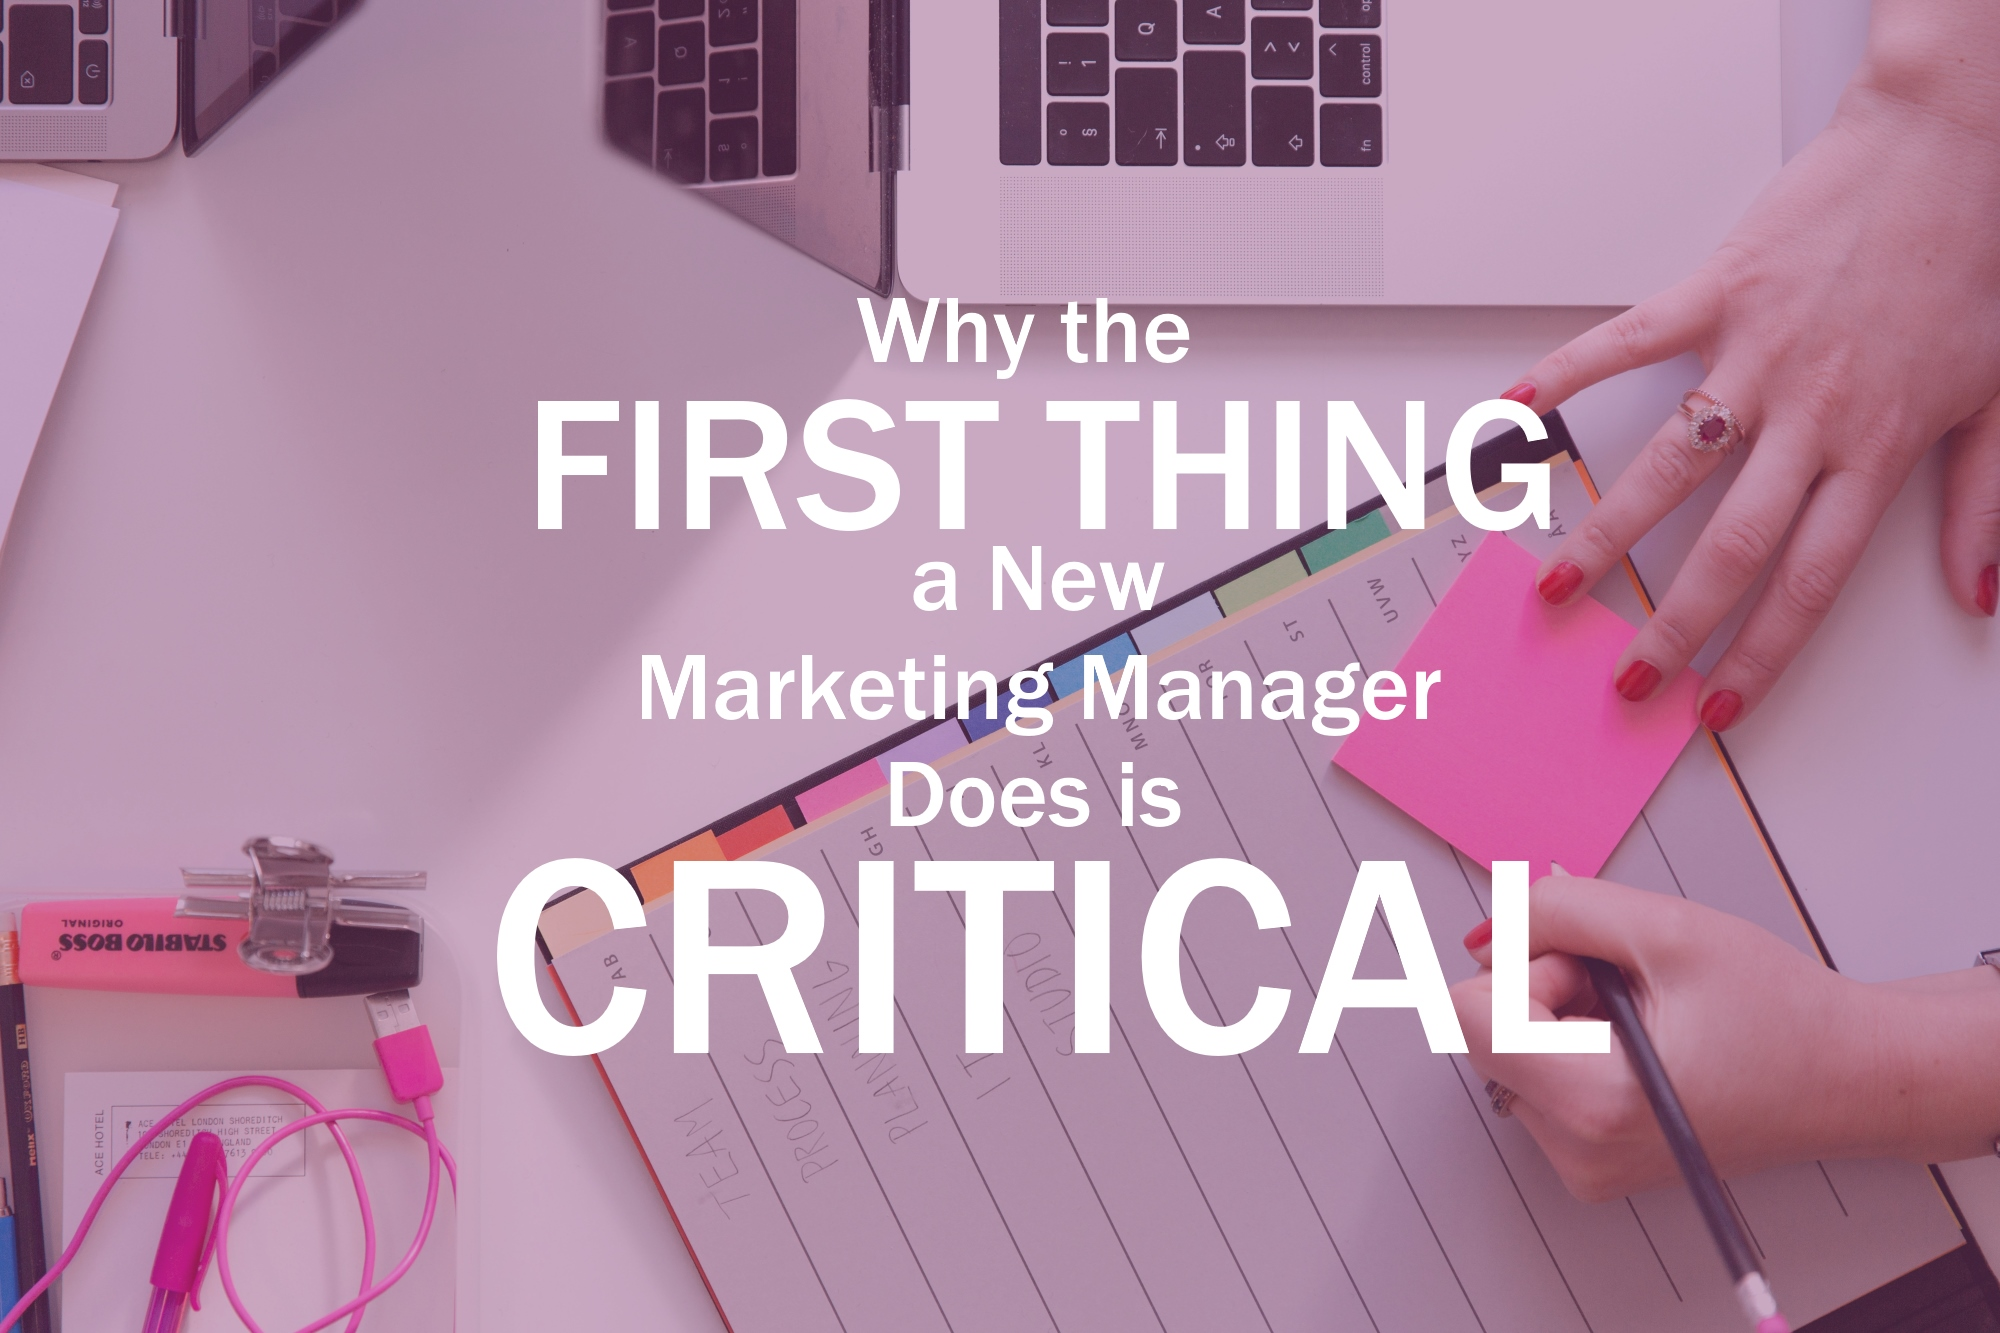 Why the First Thing a New Marketing Manager Does is Critical